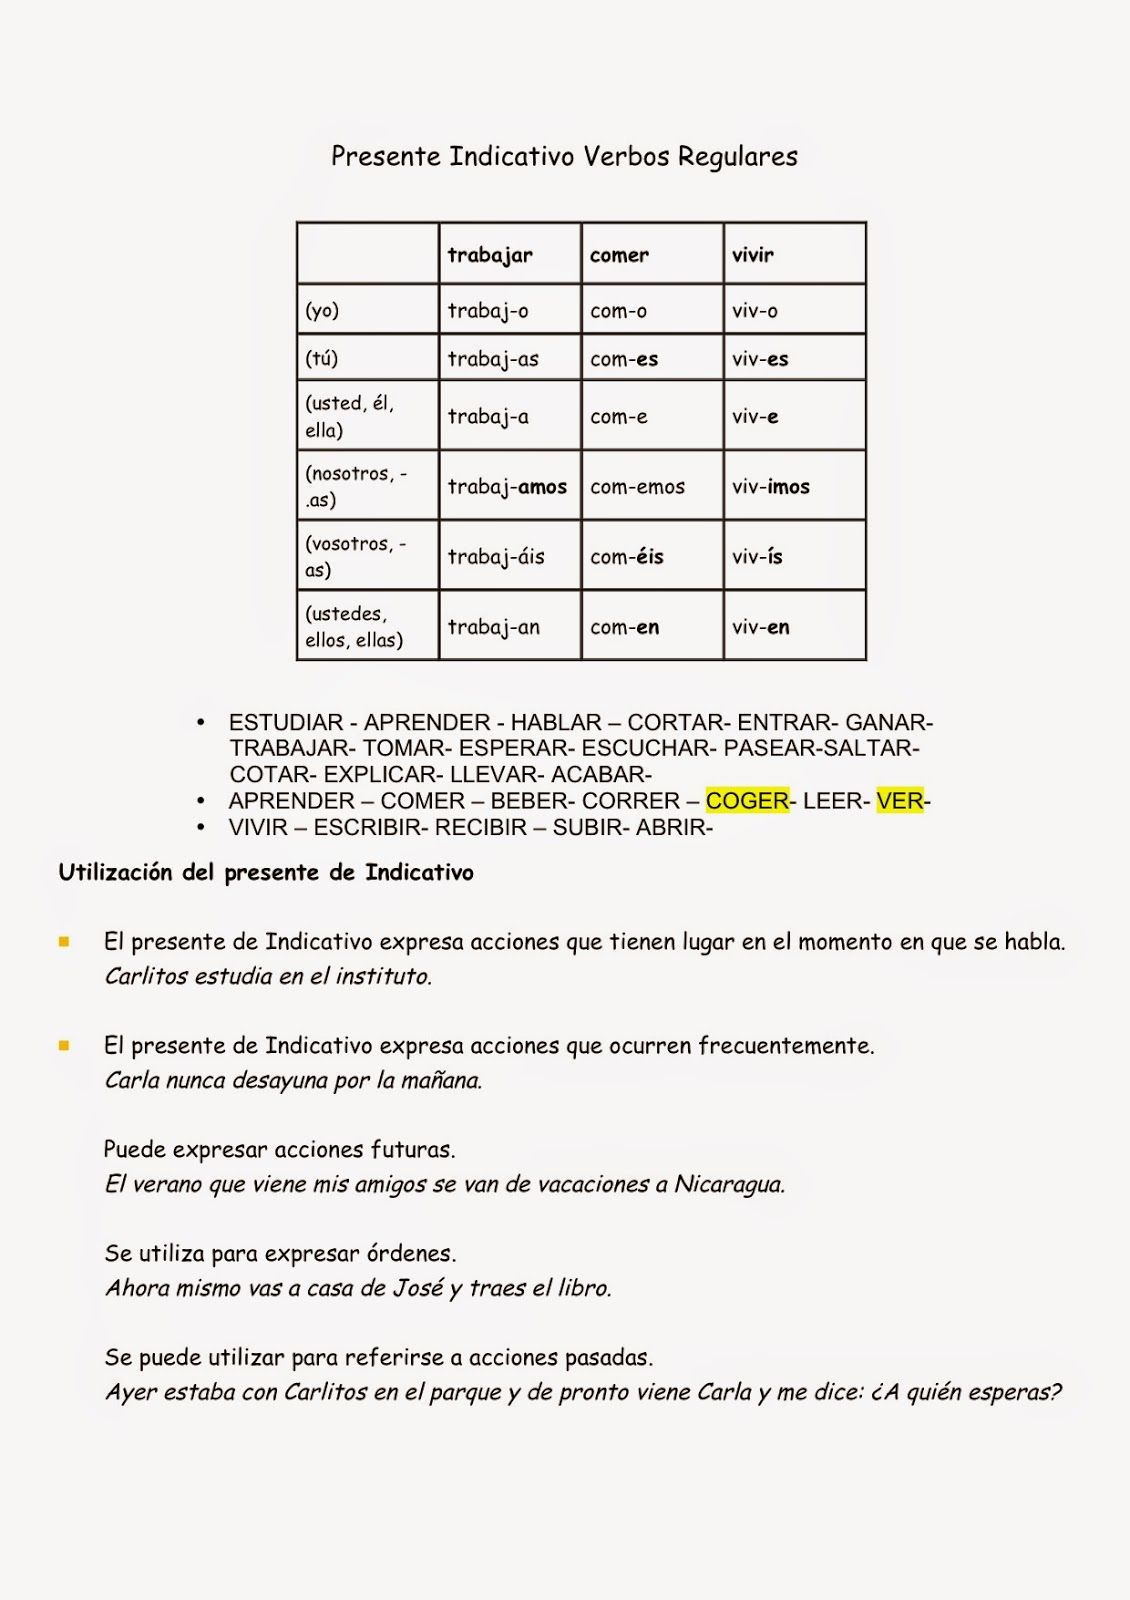 Gram Tica Presente Indicativo Verbos Irrregulares Ue High School Spanish 1 Gramatica Worksheet